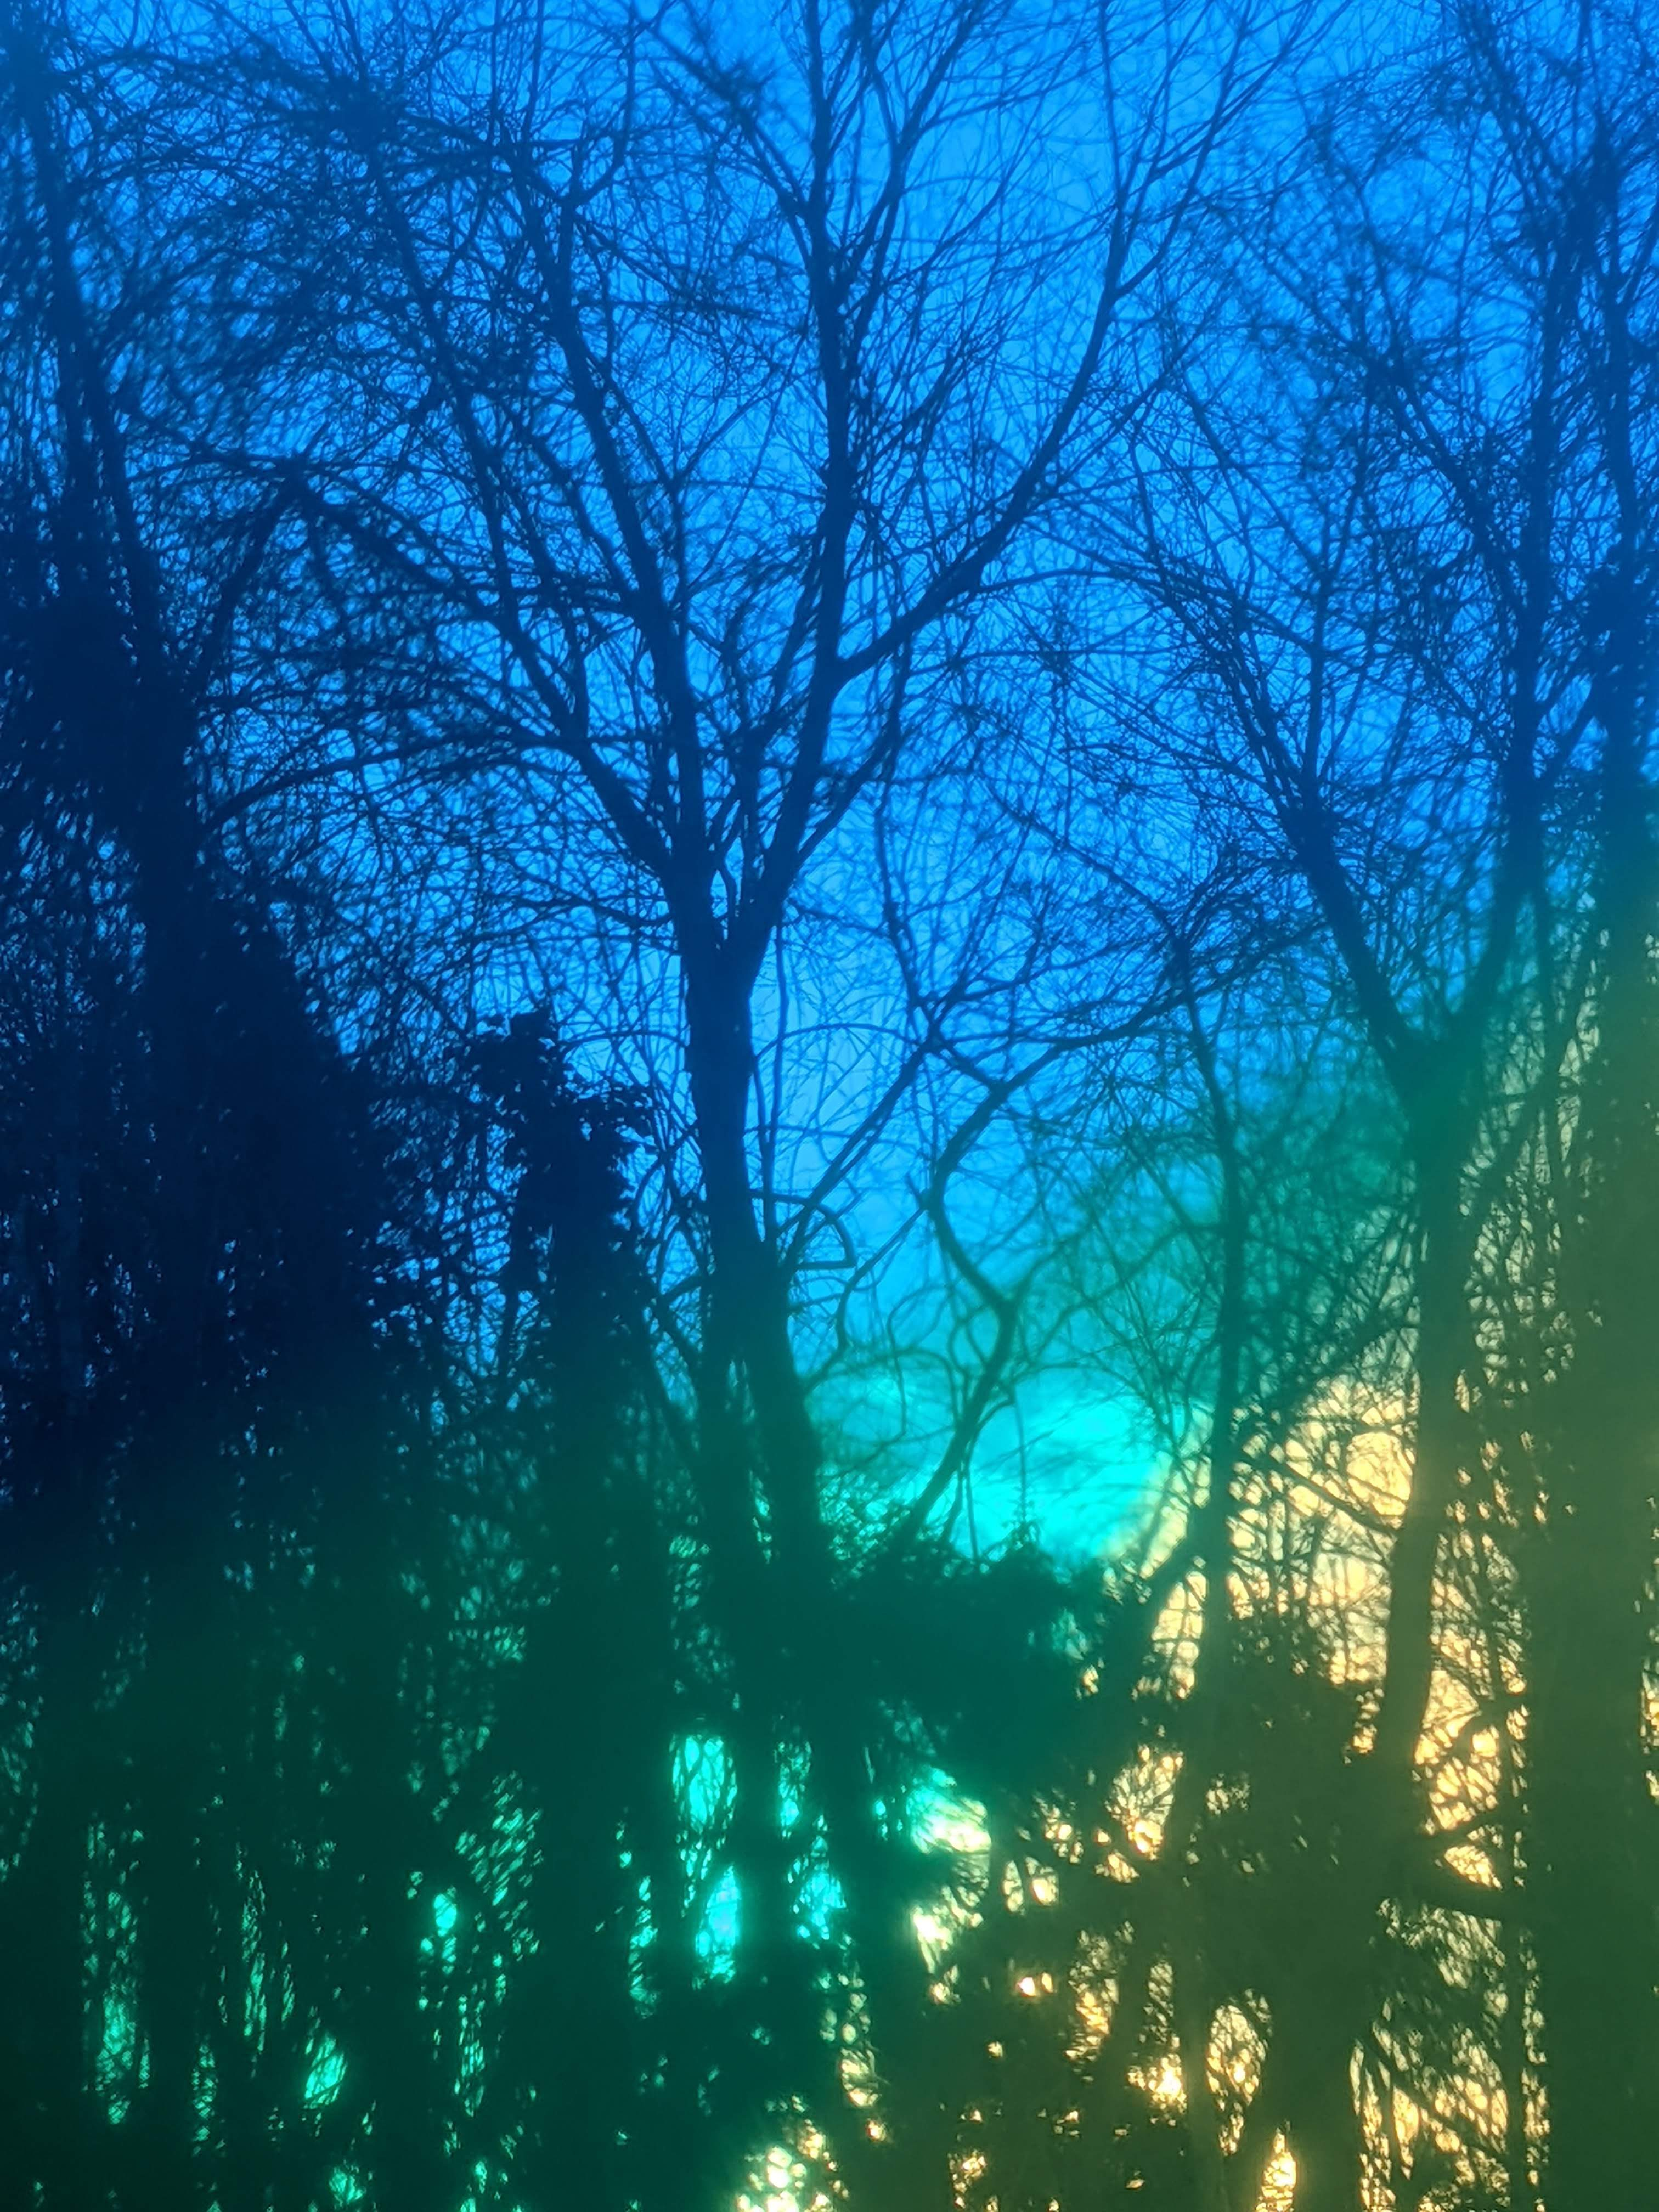 An image of trees with a blue, green, and yellow toned sky in the background.